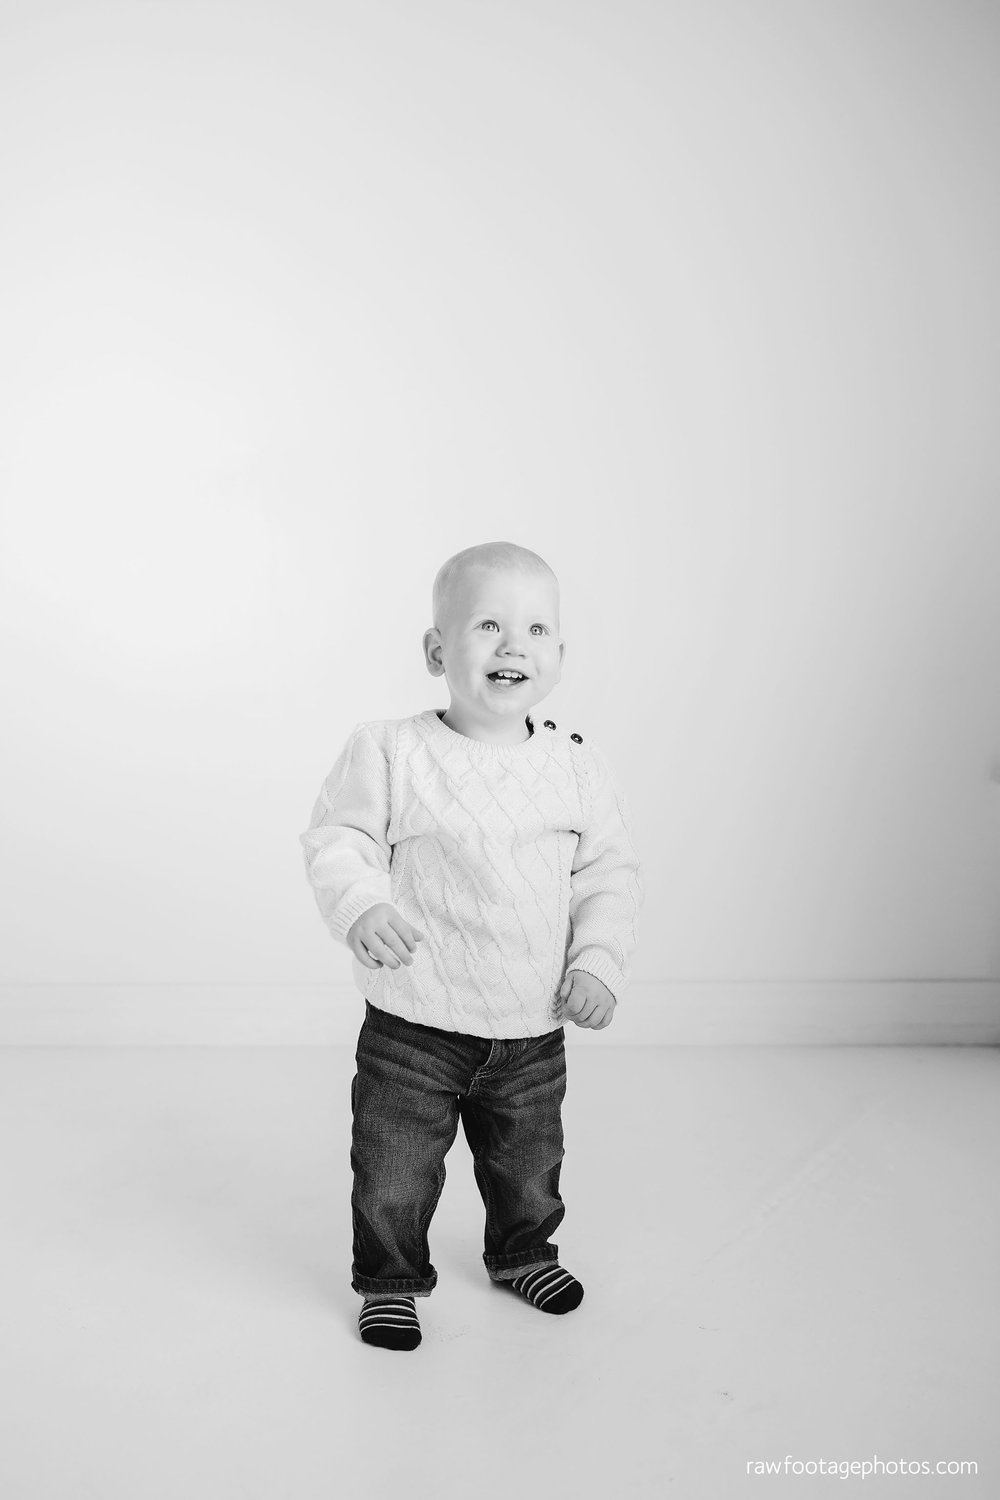 london_ontario_family_photographer-studio_photography-studio_lifestyle_portraits-white_studio-mother_son-candid_family_photography-raw_footage_photography046.jpg